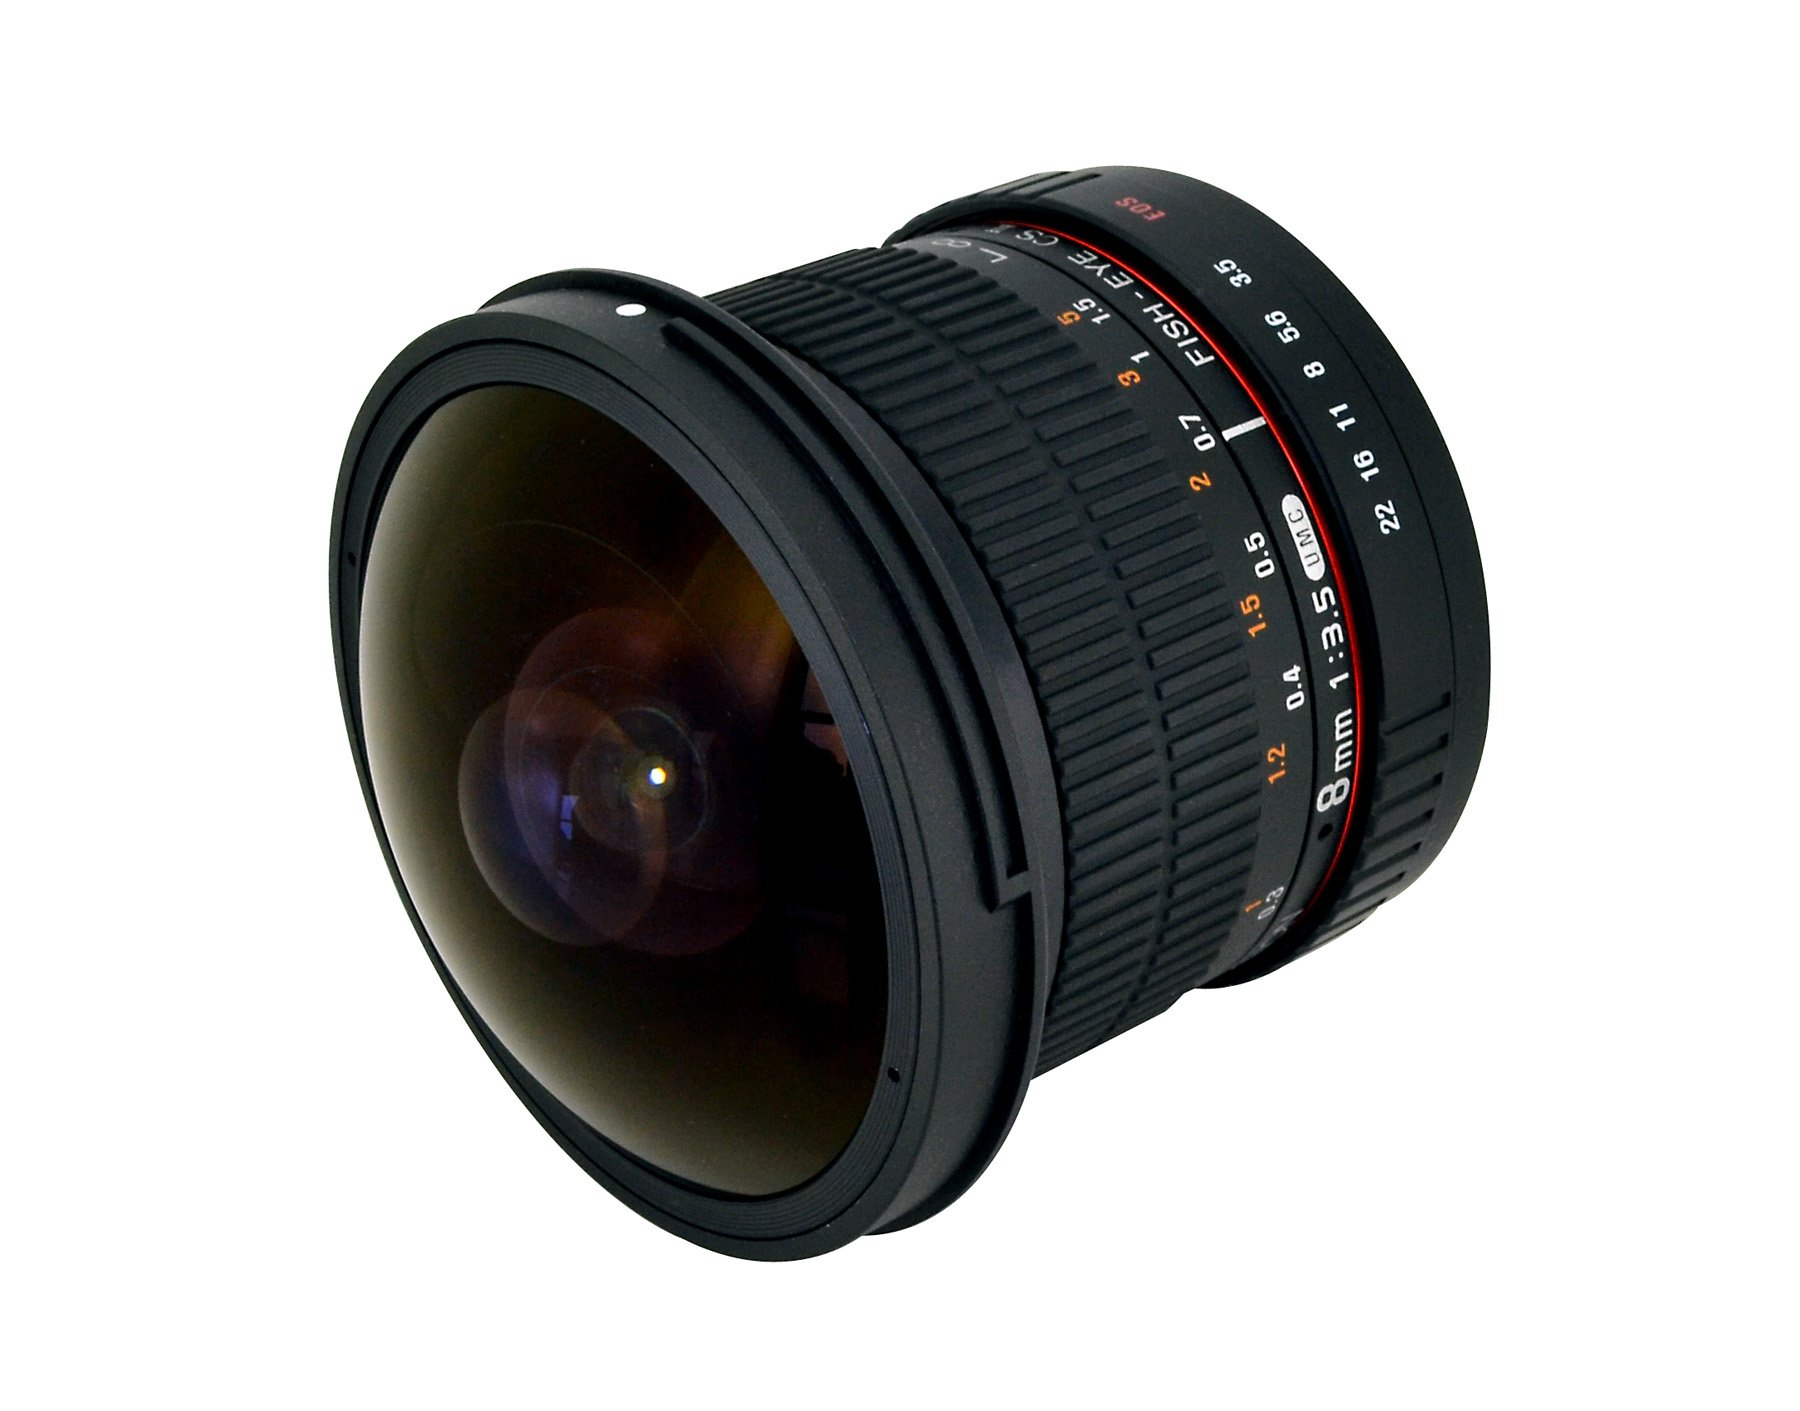 Rokinon HD8M-C 8mm f/3.5 HD Fisheye Lens with Removeable Hood for Canon DSLR 8-8mm, Fixed-Non-Zoom Lens by Rokinon